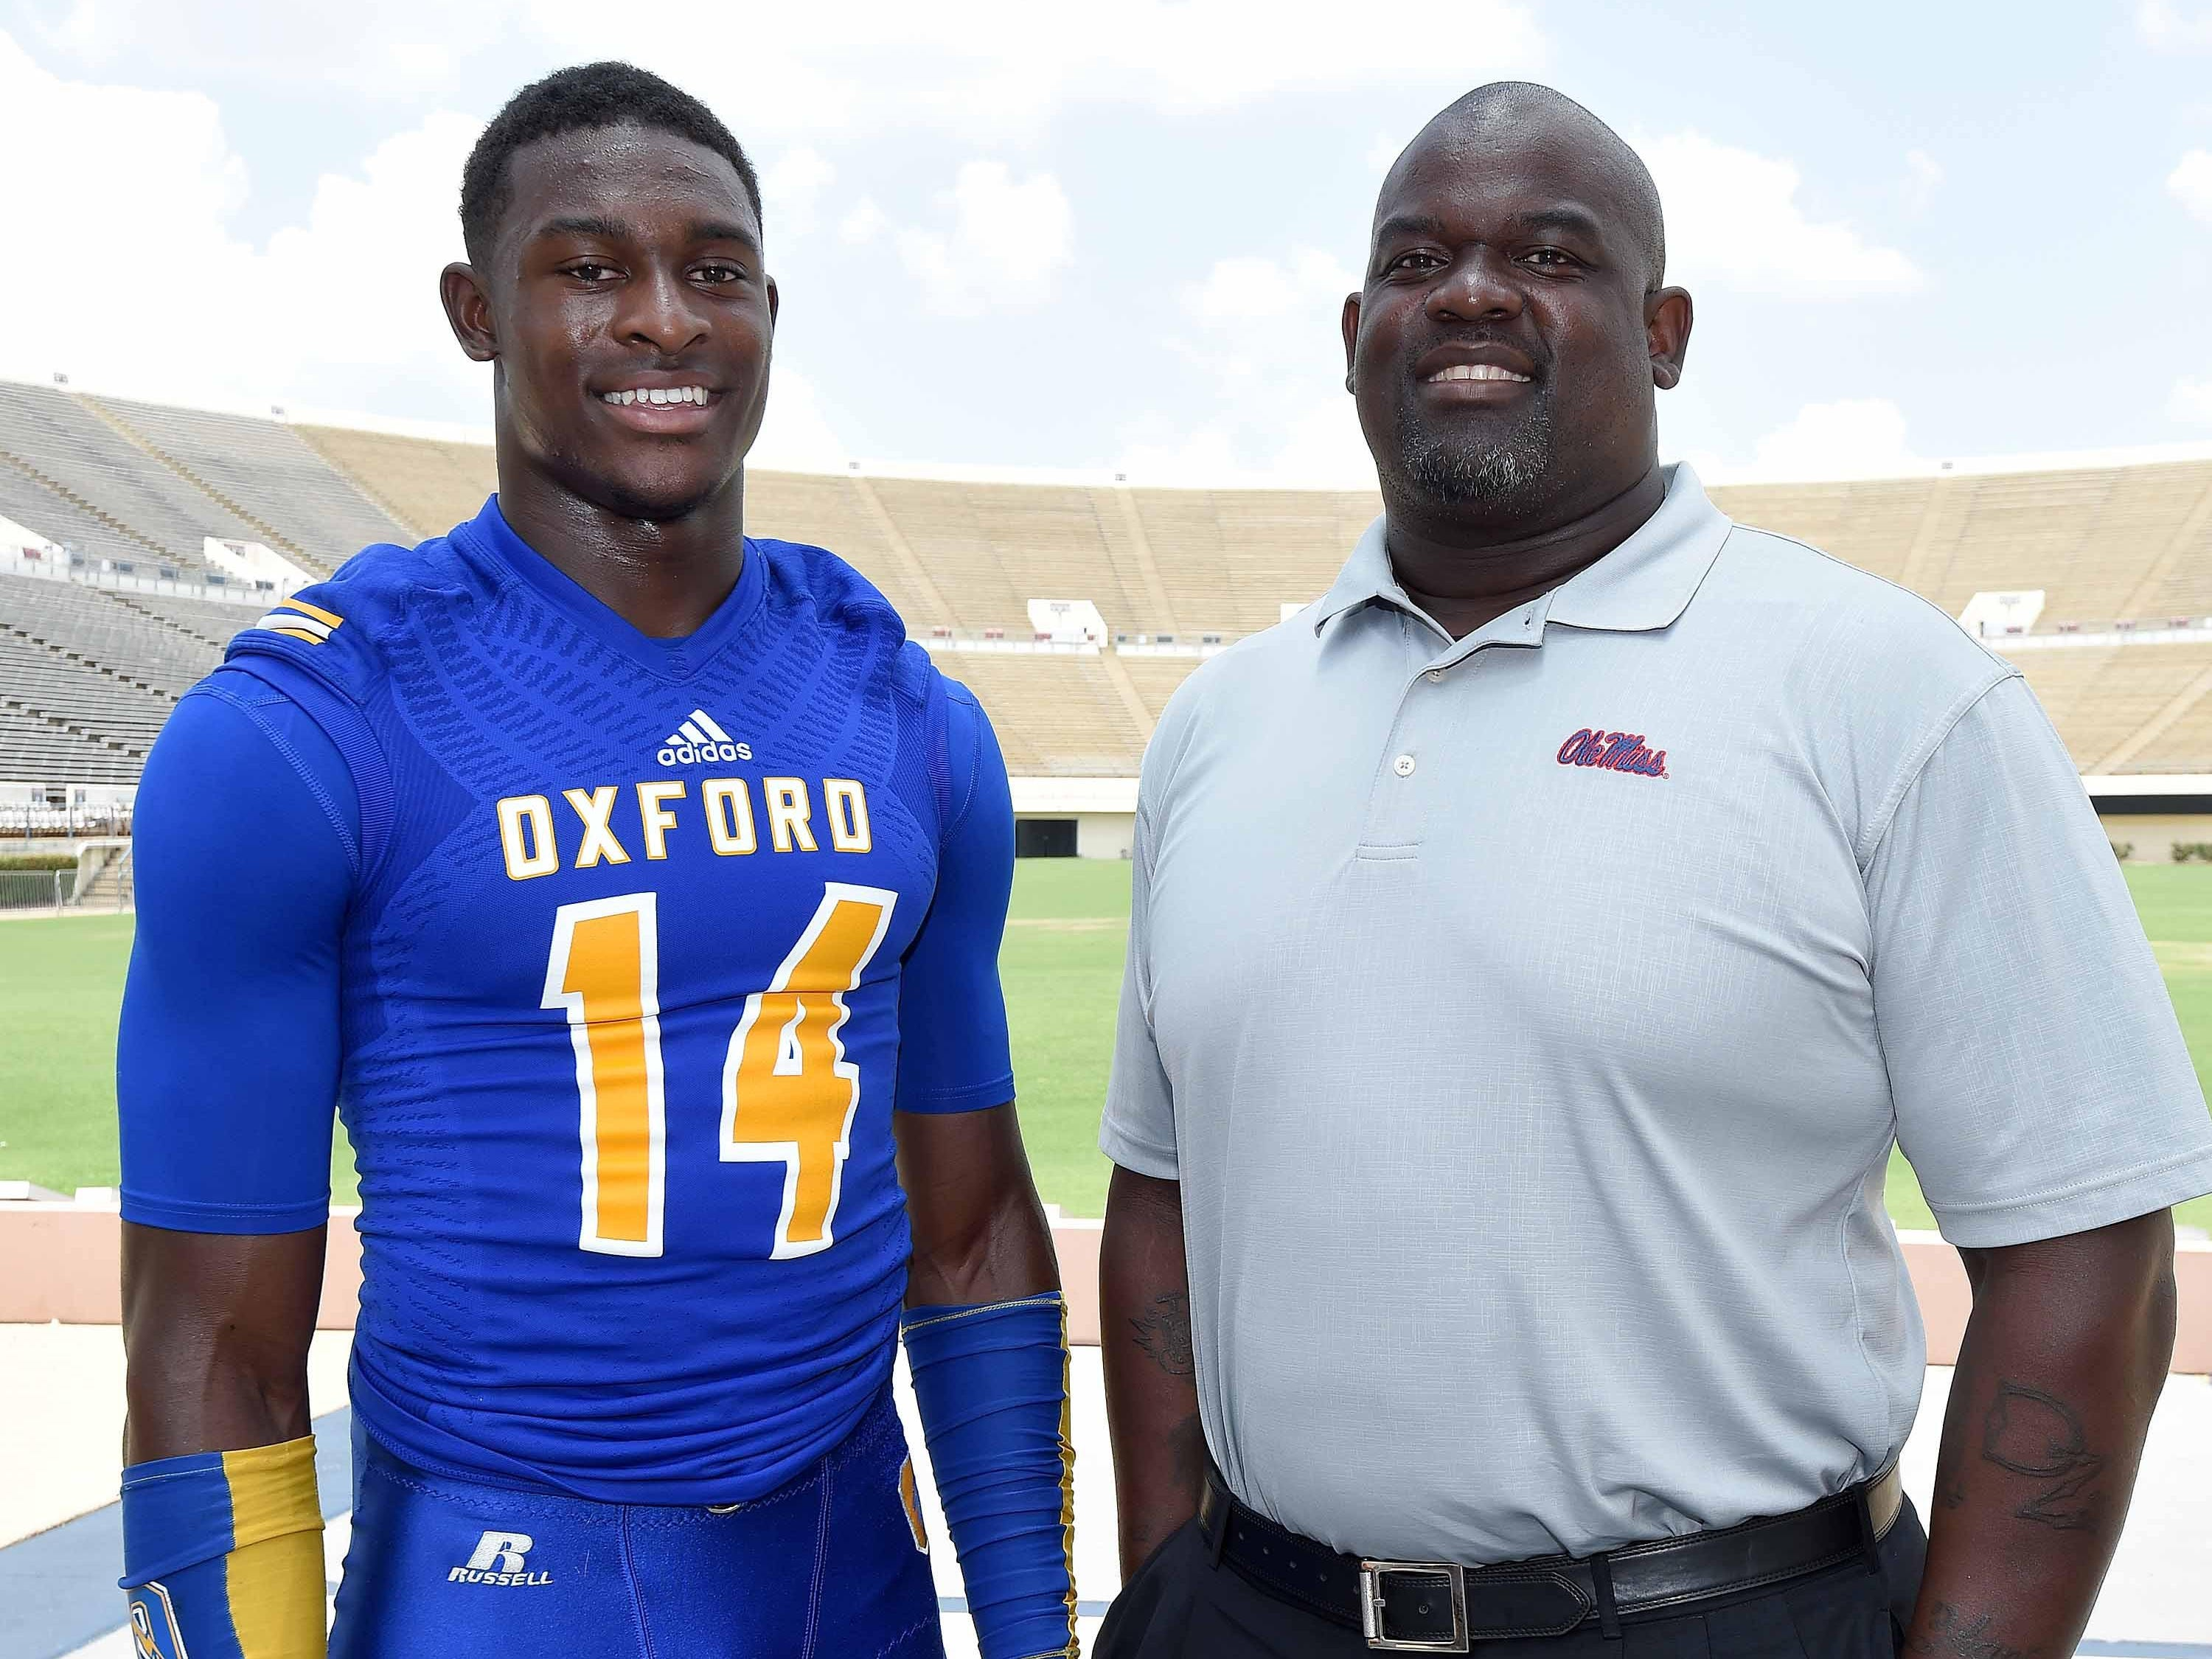 Oxford senior wide receiver D.K. Metcalf and his father Terrence Metcalf pose for pictures at the Dandy Dozen photo shoot at Mississippi Veterans Memorial Stadium on July 28. D.K. is following in his father's footsteps, having committed to play for Ole Miss. The two get to share the field together as Terrence is the team's defensive line coach.